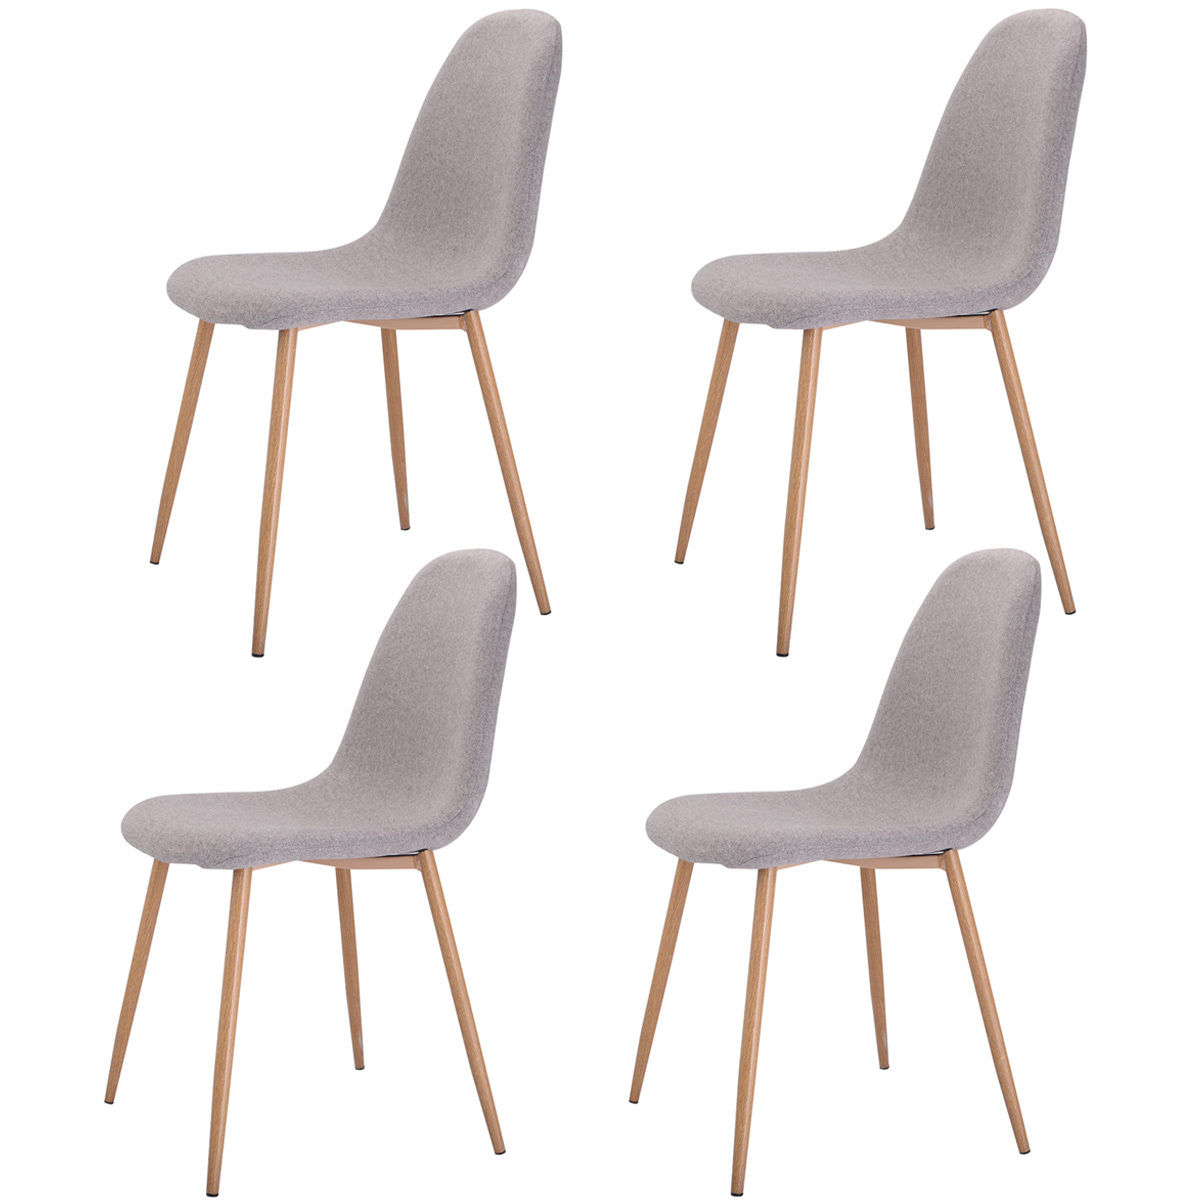 Giantex Set Of 4 Pcs Modern Dining Accent Side Chairs Living Room Wood Legs Leisure Chair Home